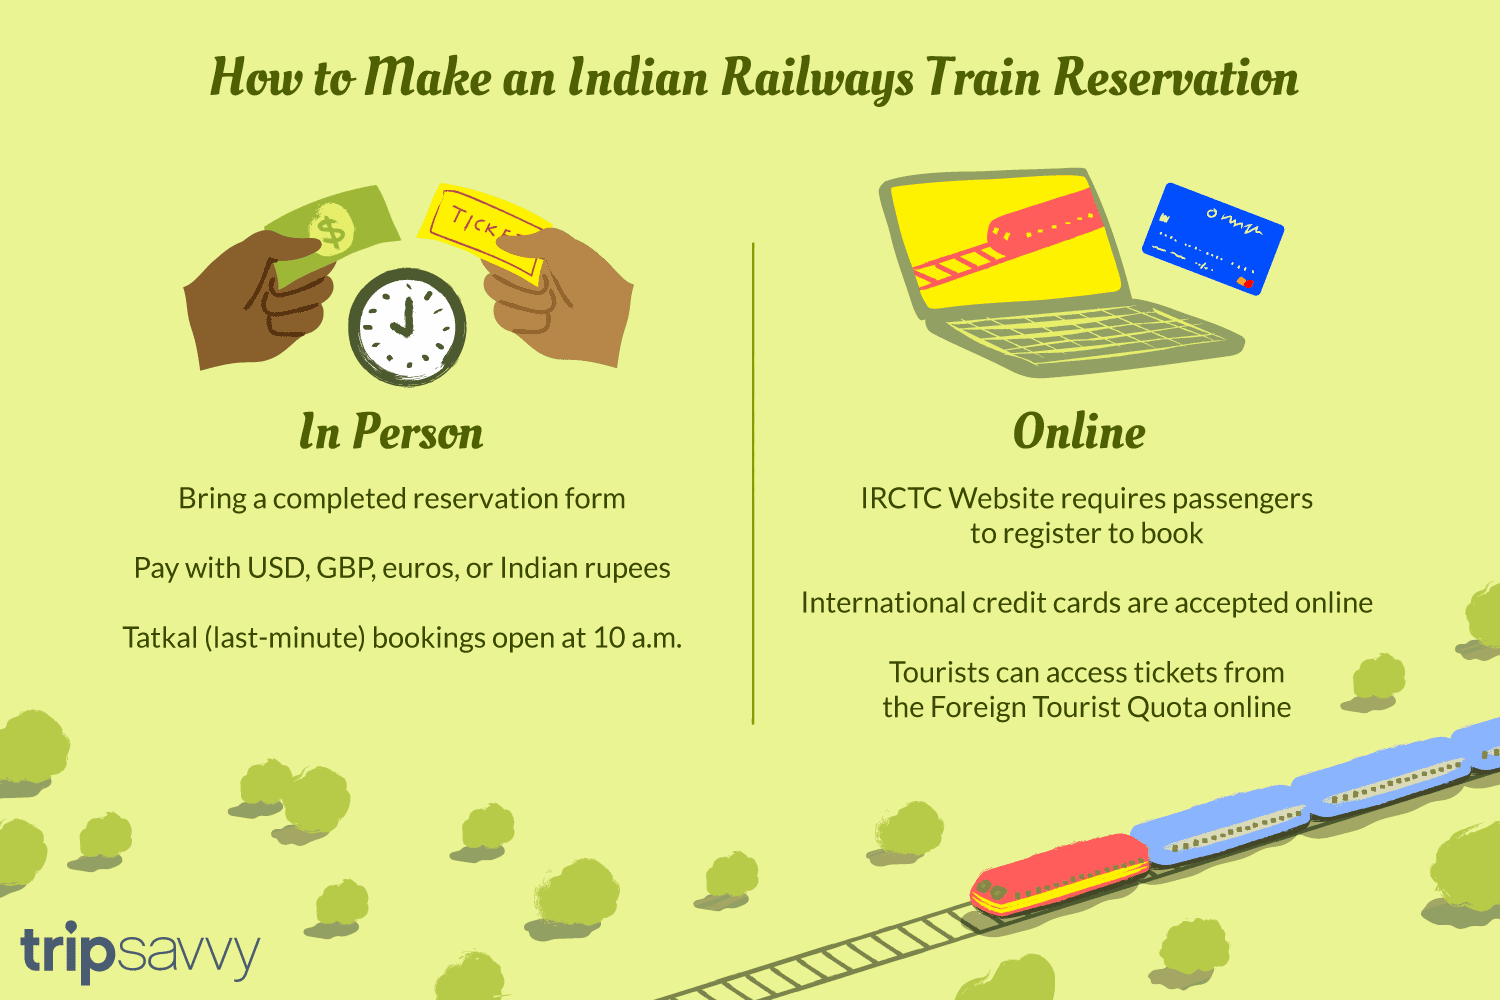 Railways To Indian An How Reservation Train A Make